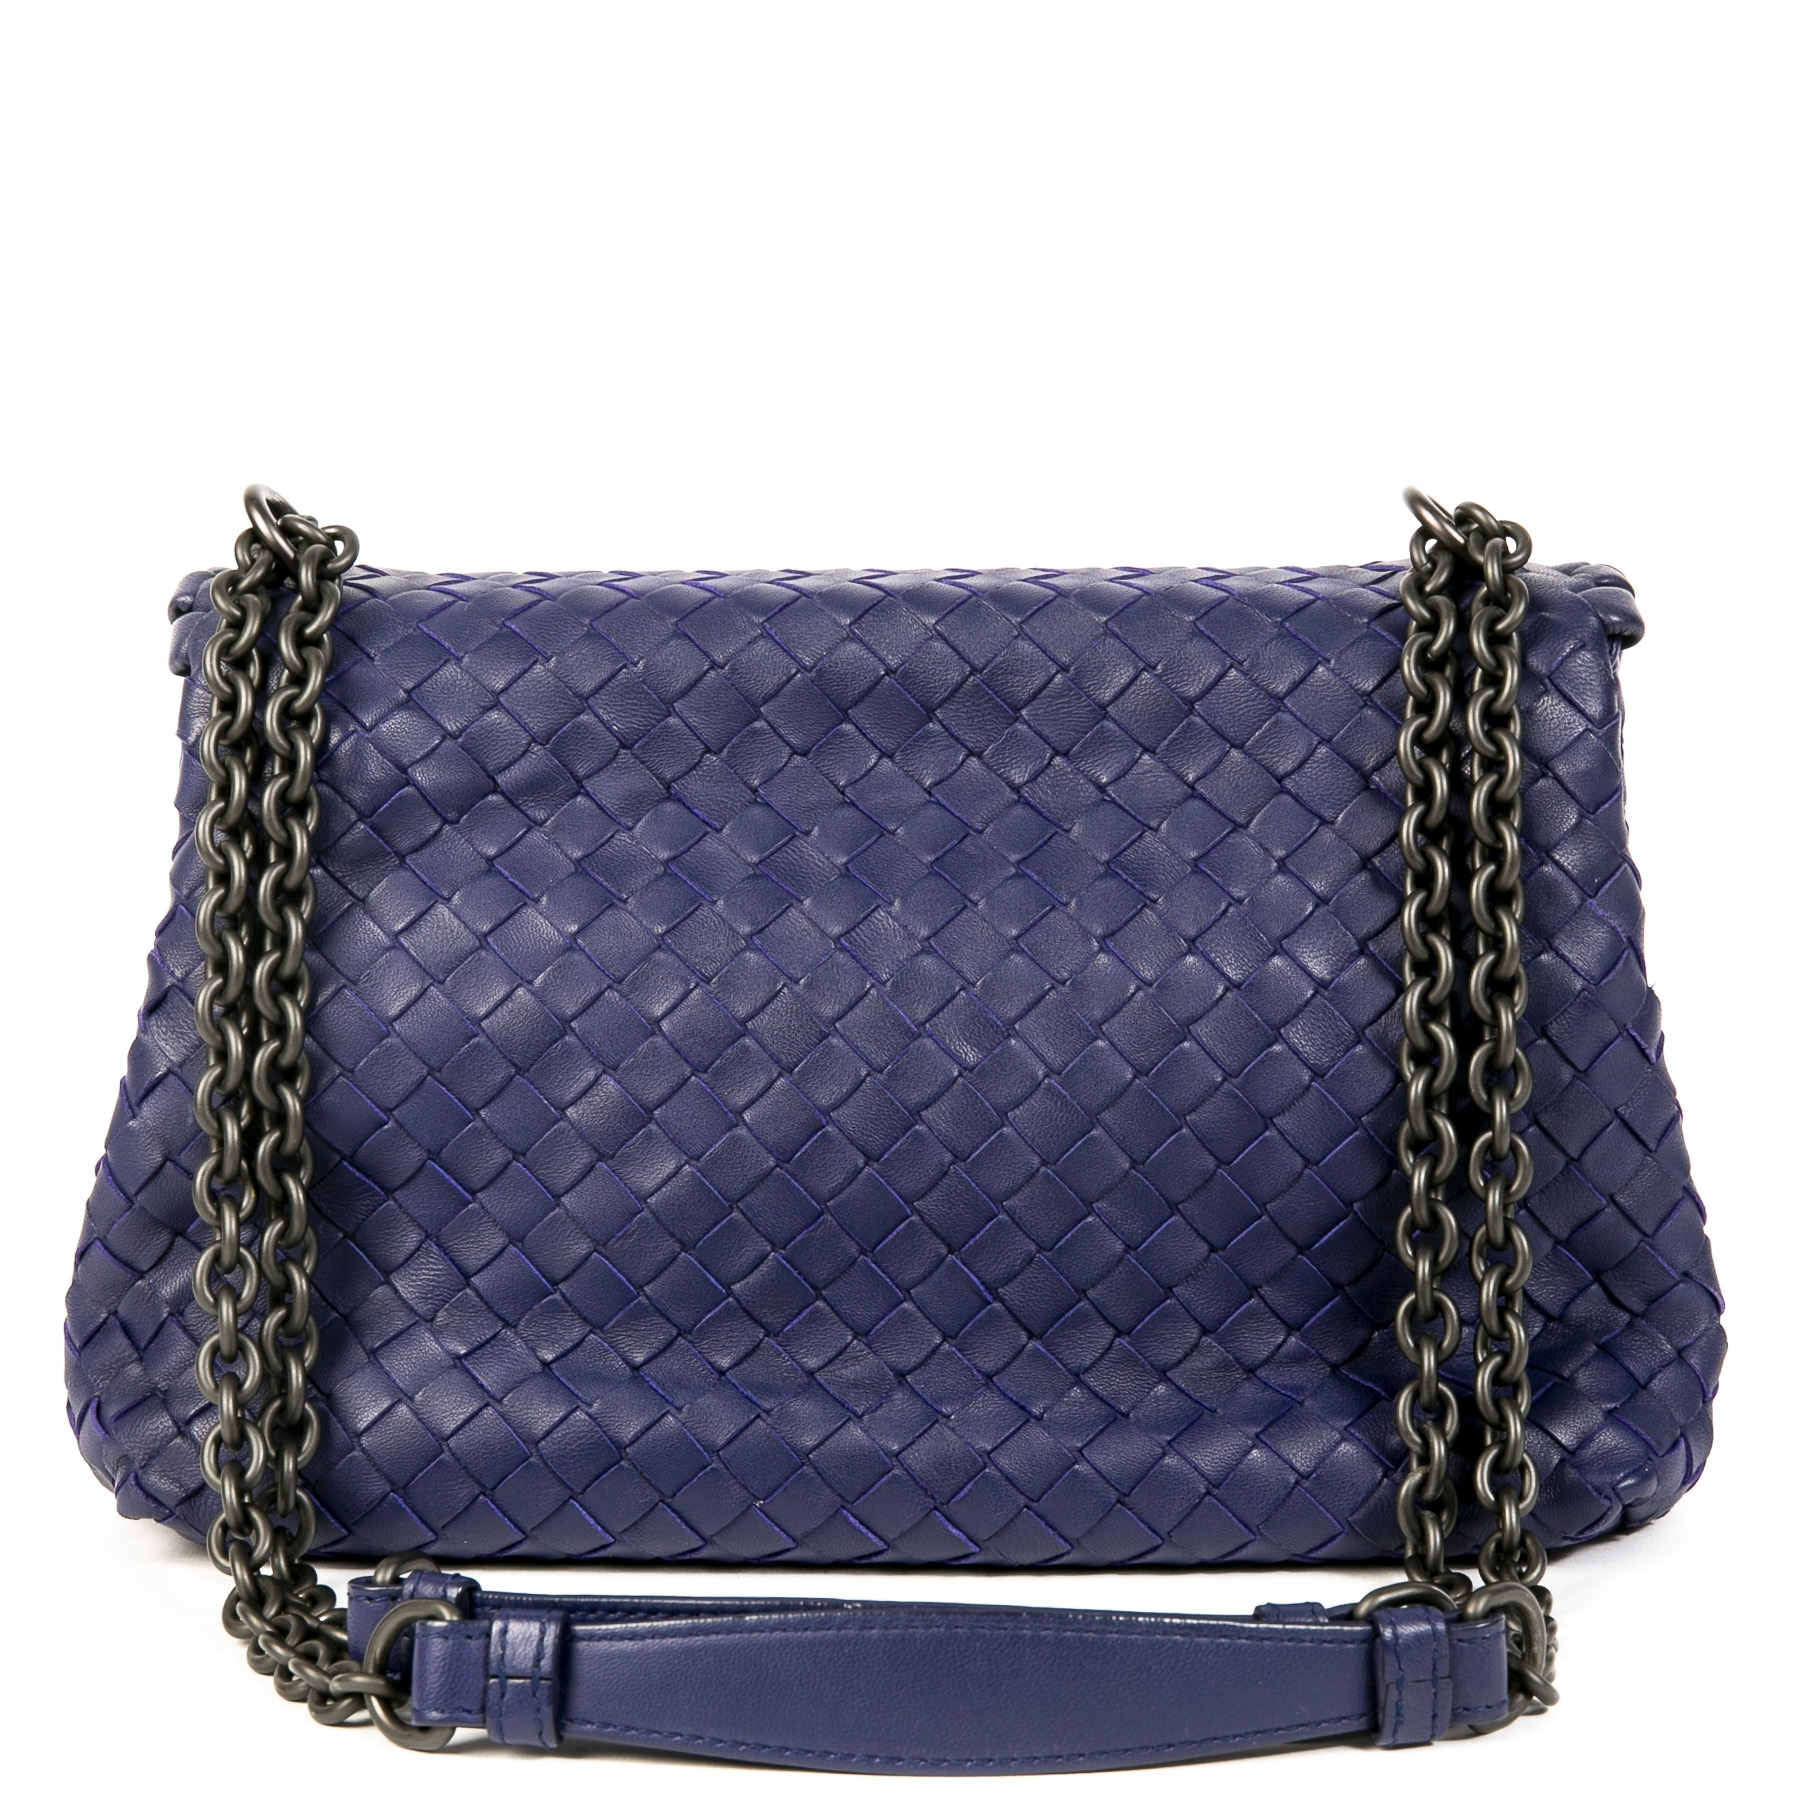 Bottega Veneta Olimpia Royal Blue Shoulder Bag